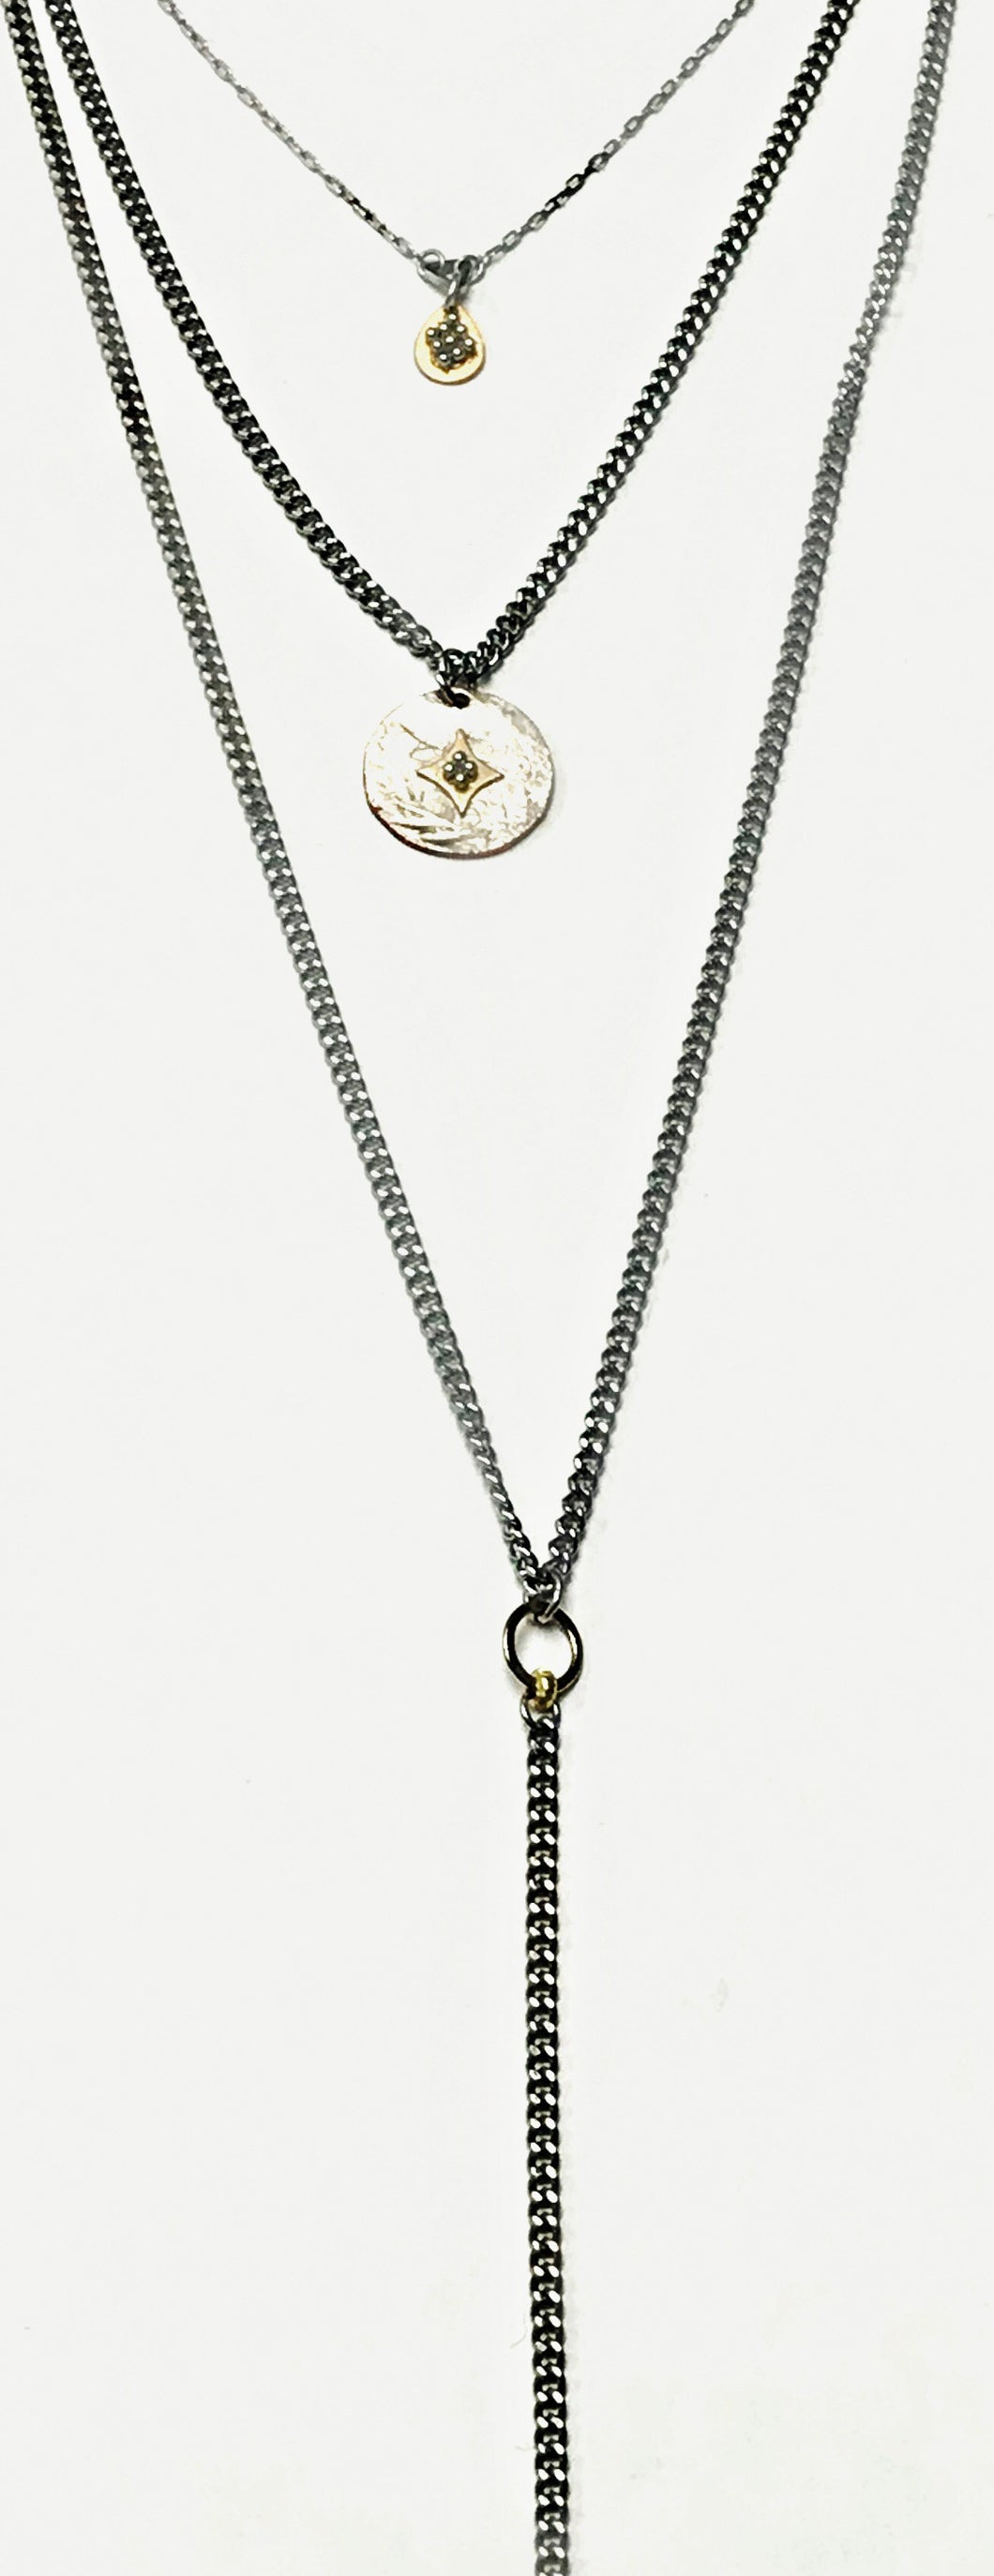 ✨triple layered coin y necklace✨